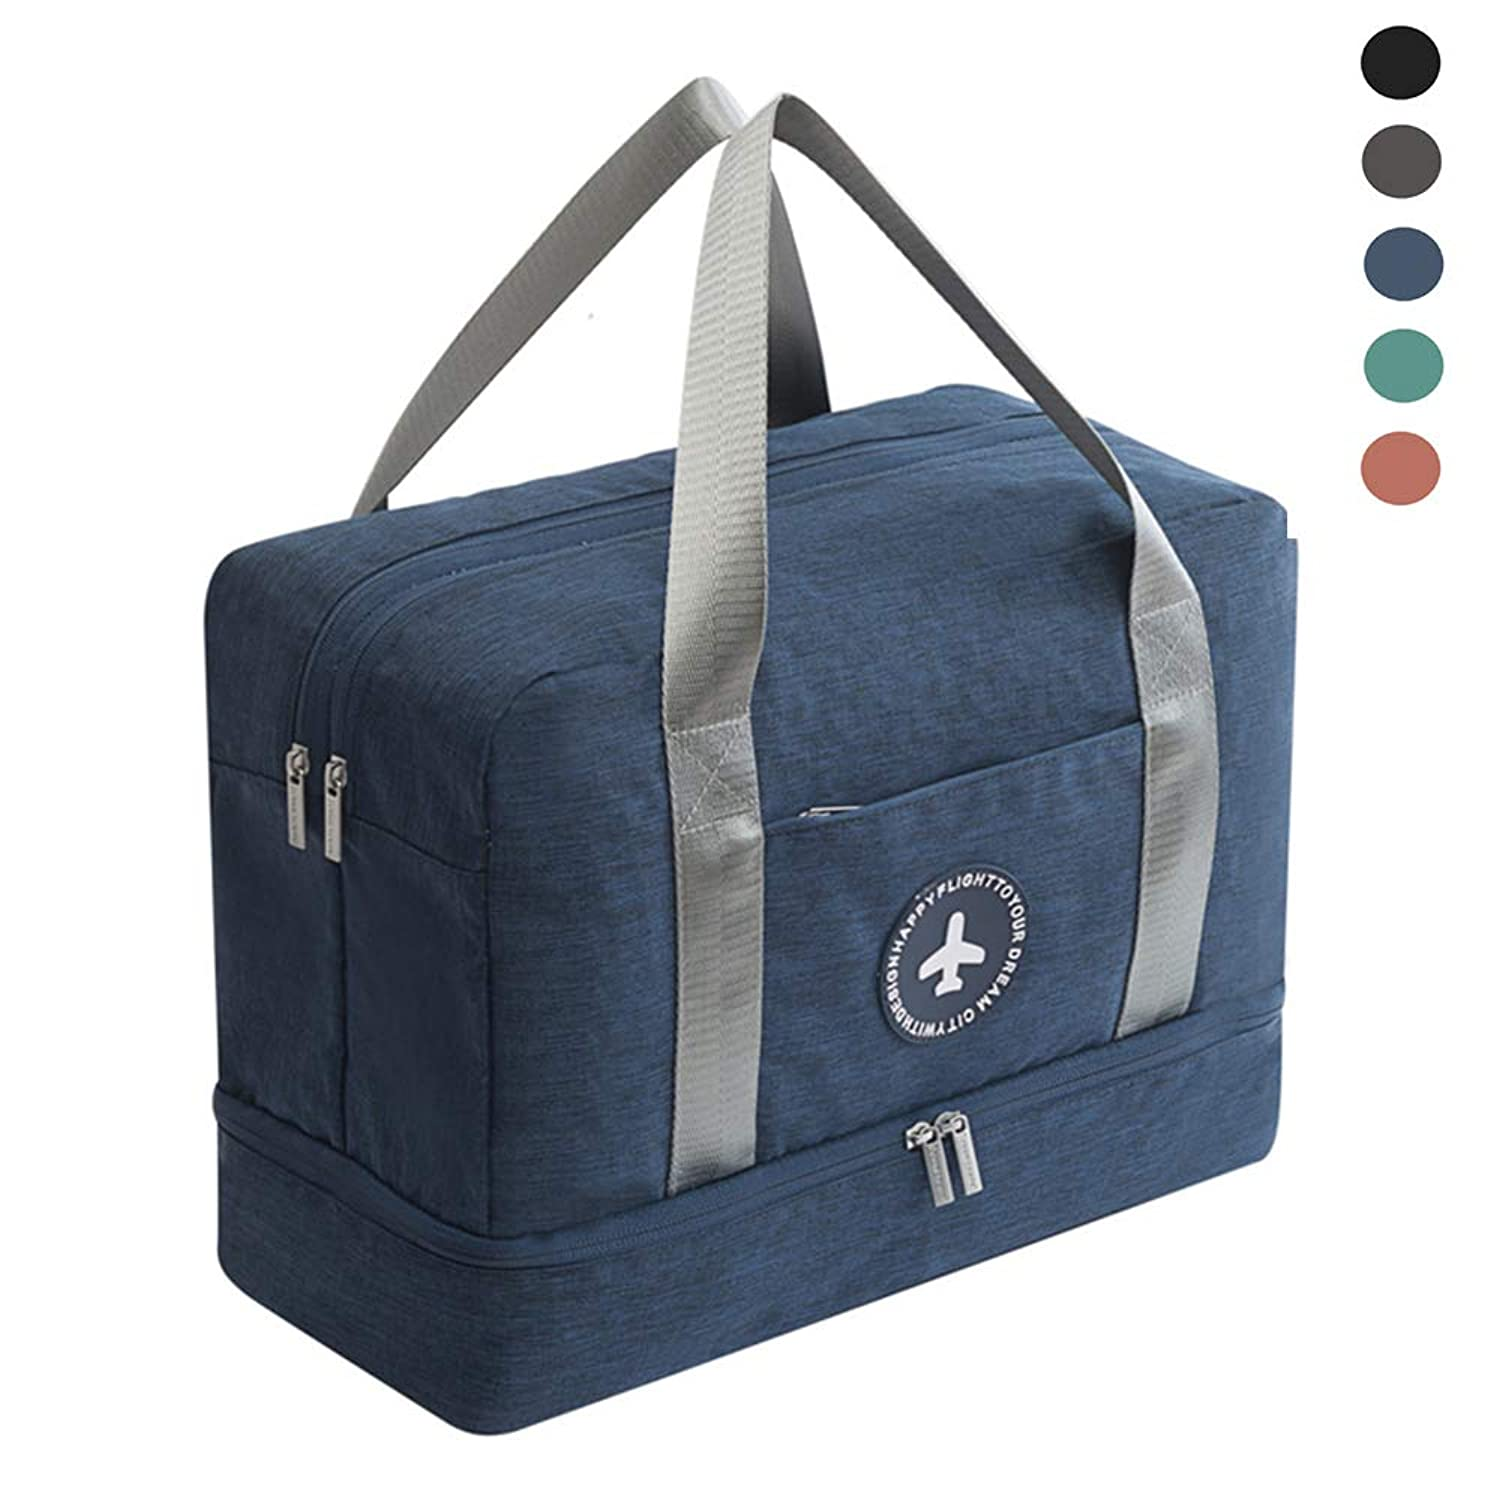 CHYOUL Women Mens Dry Wet Depart Bag with Separate Compartment for Shoes Waterproof Liner Functional Multipurpose Durable Travel Organizer Gym Beach Weekender Tote Navy uwdurl9703682